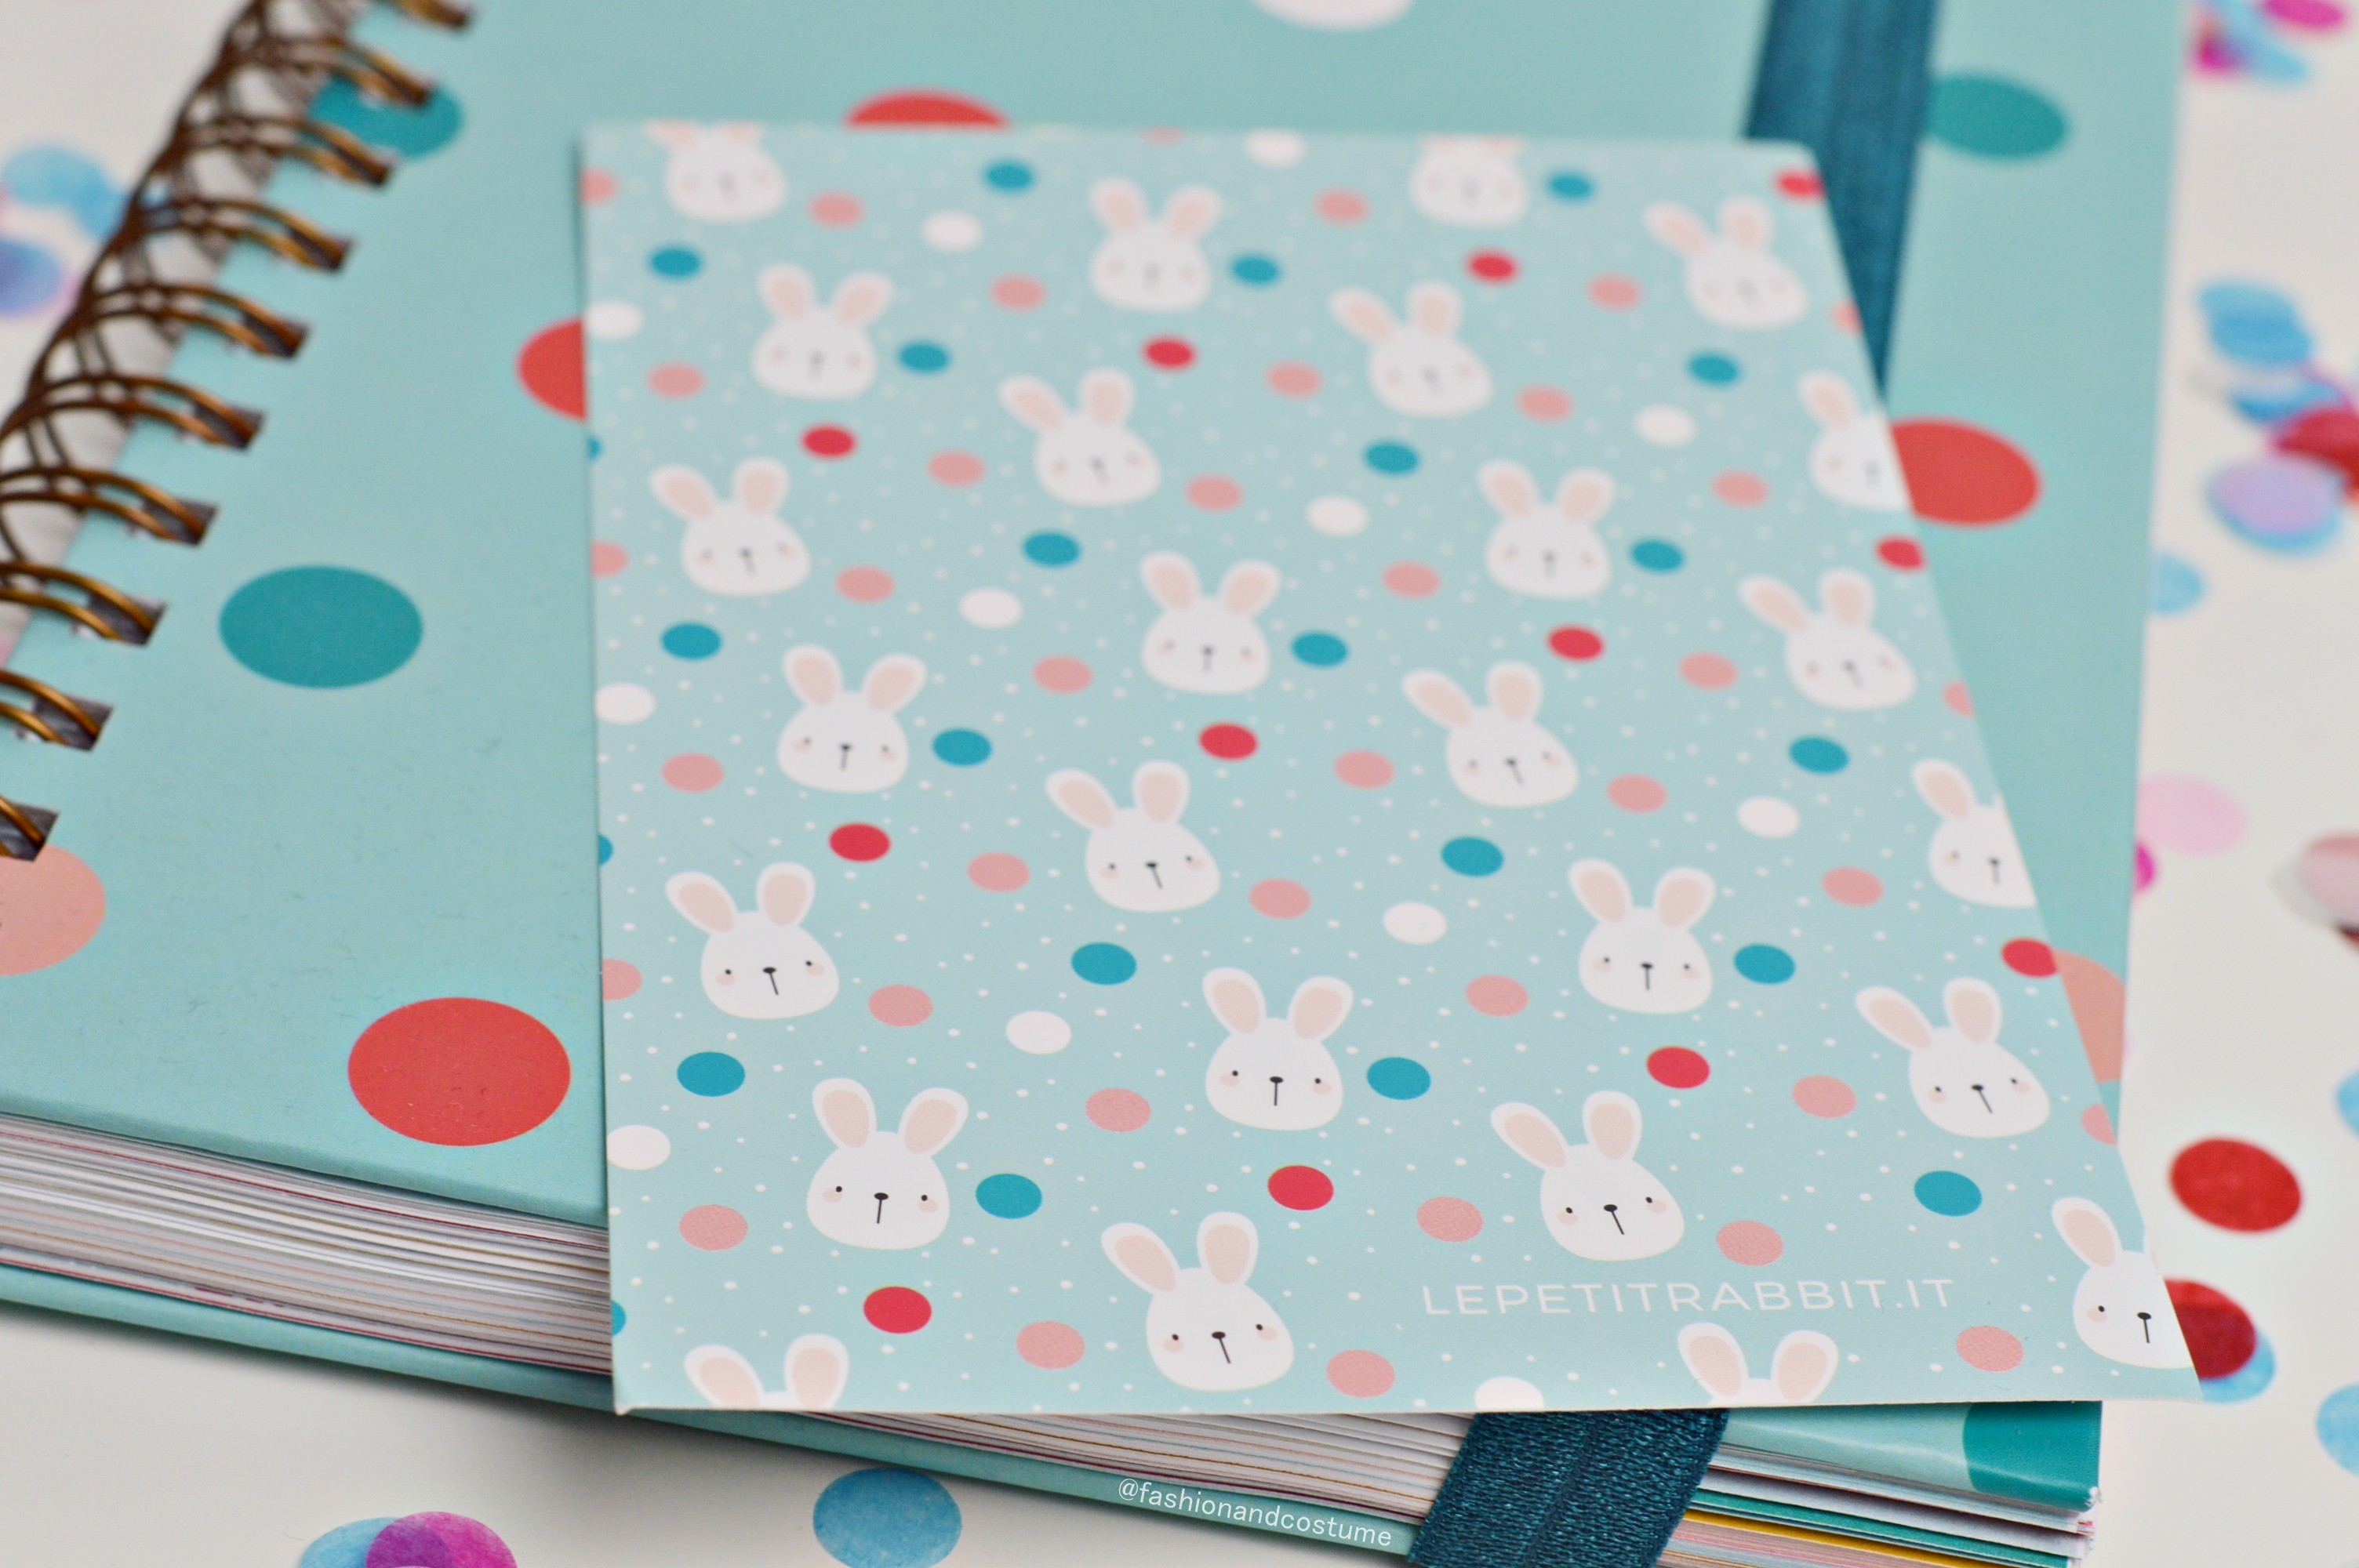 agenda-planner-2019-settimanale-weekly-giulia-lepetitrabbit-le-petit-rabbit-fashion-and-costume-fashionandcostume-graphic-designer-sticker-cartopazze